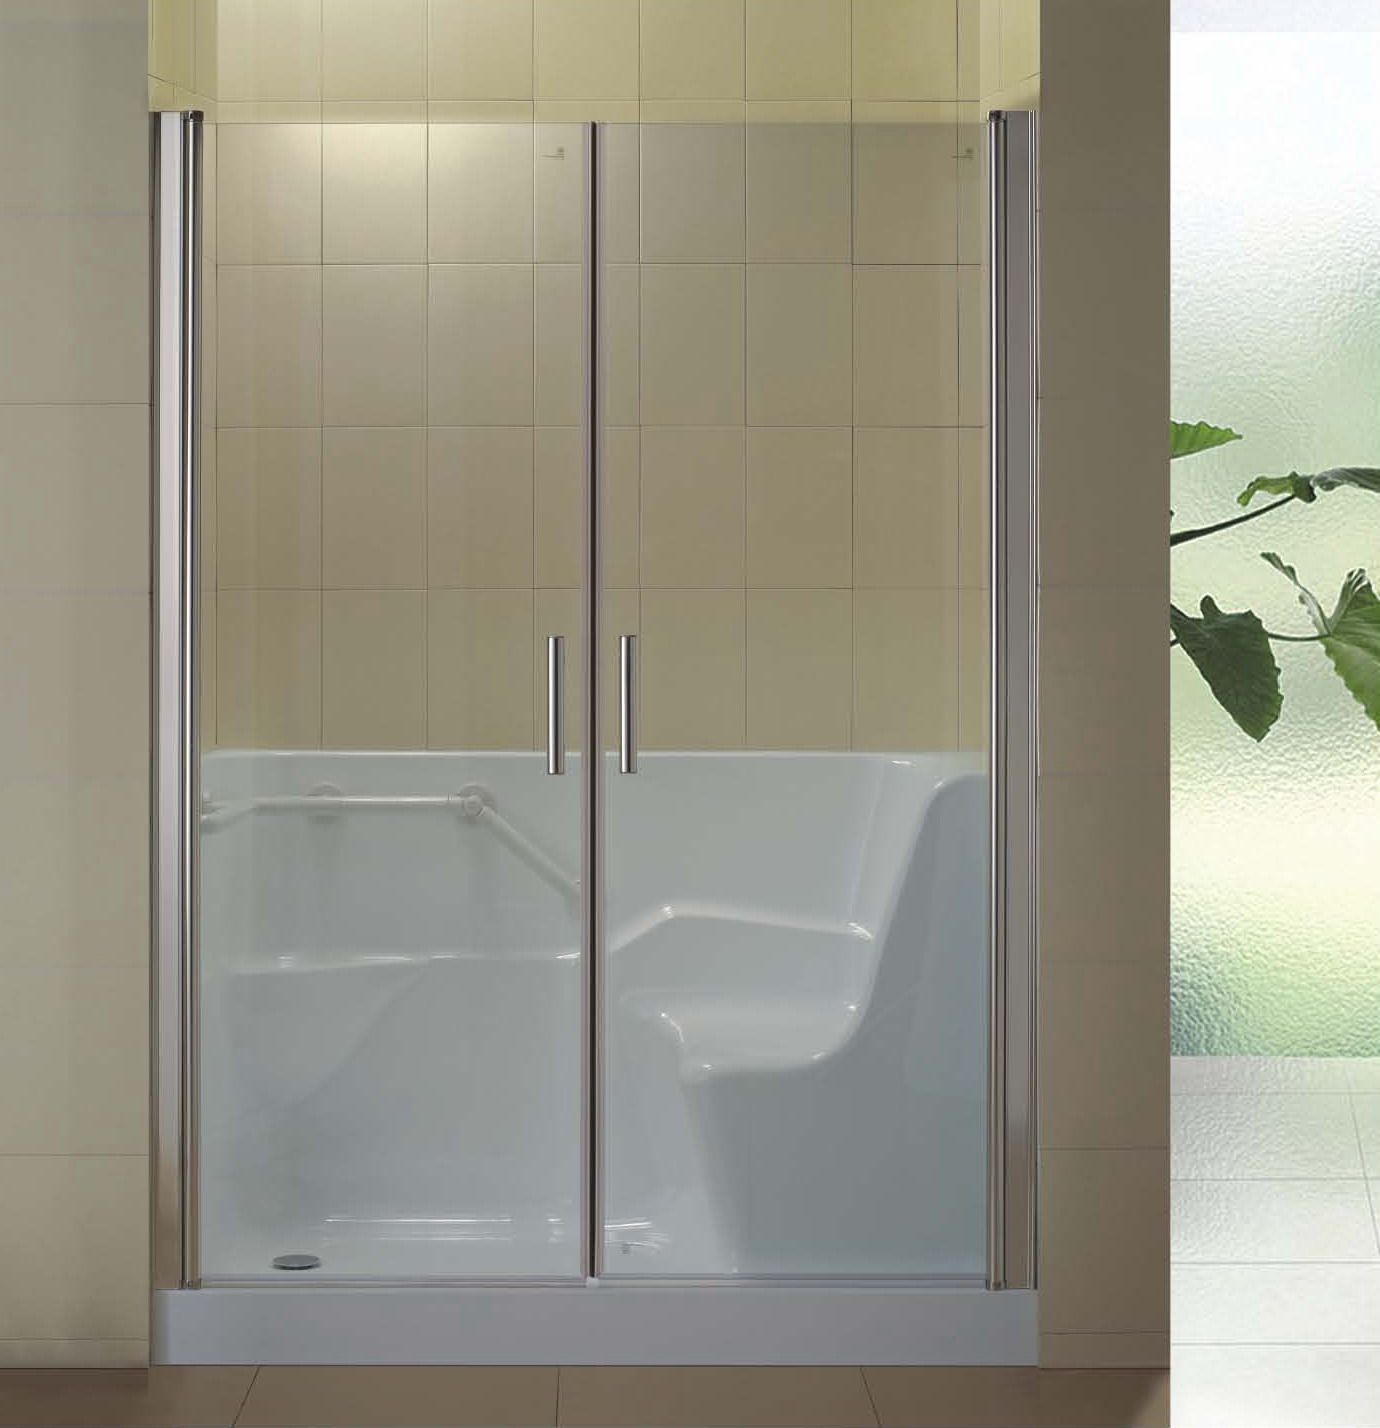 Ordinaire New Shower Room For Old Or Disable People (L 391)